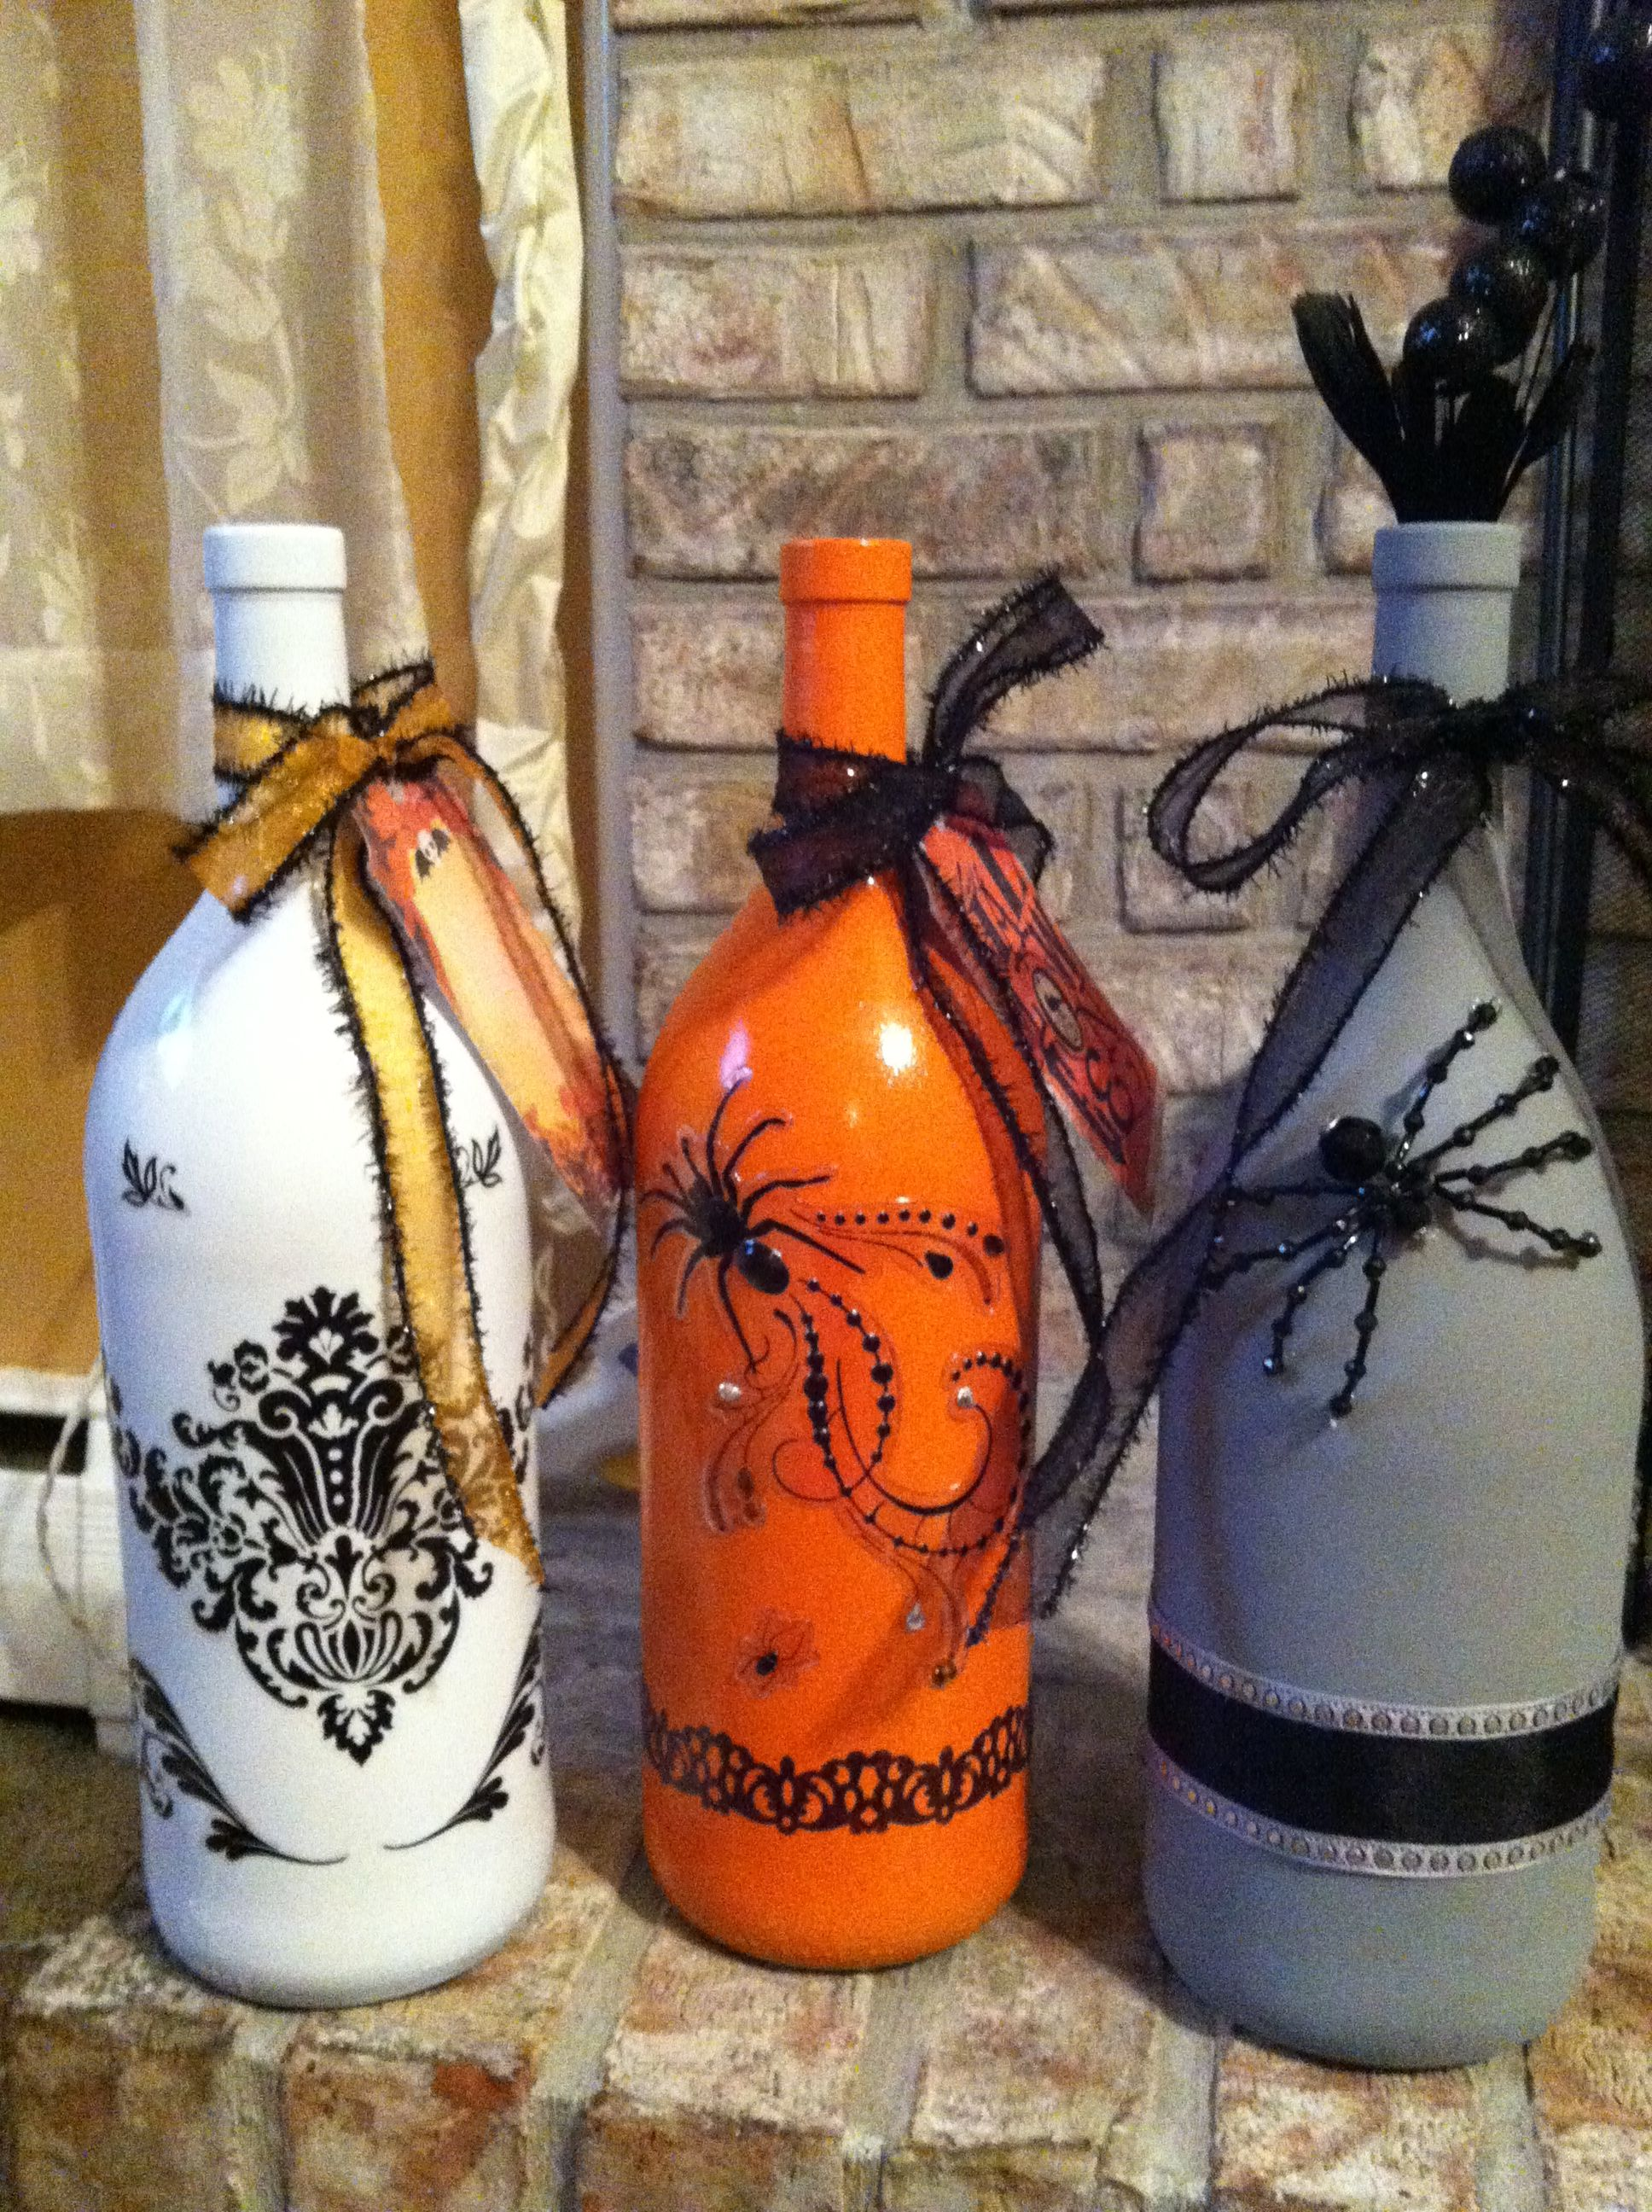 Guess I Need To Finish Up Some Wine So I Can Make These Bottles Lol Halloween Wine Bottles Fall Halloween Decor Bottle Crafts